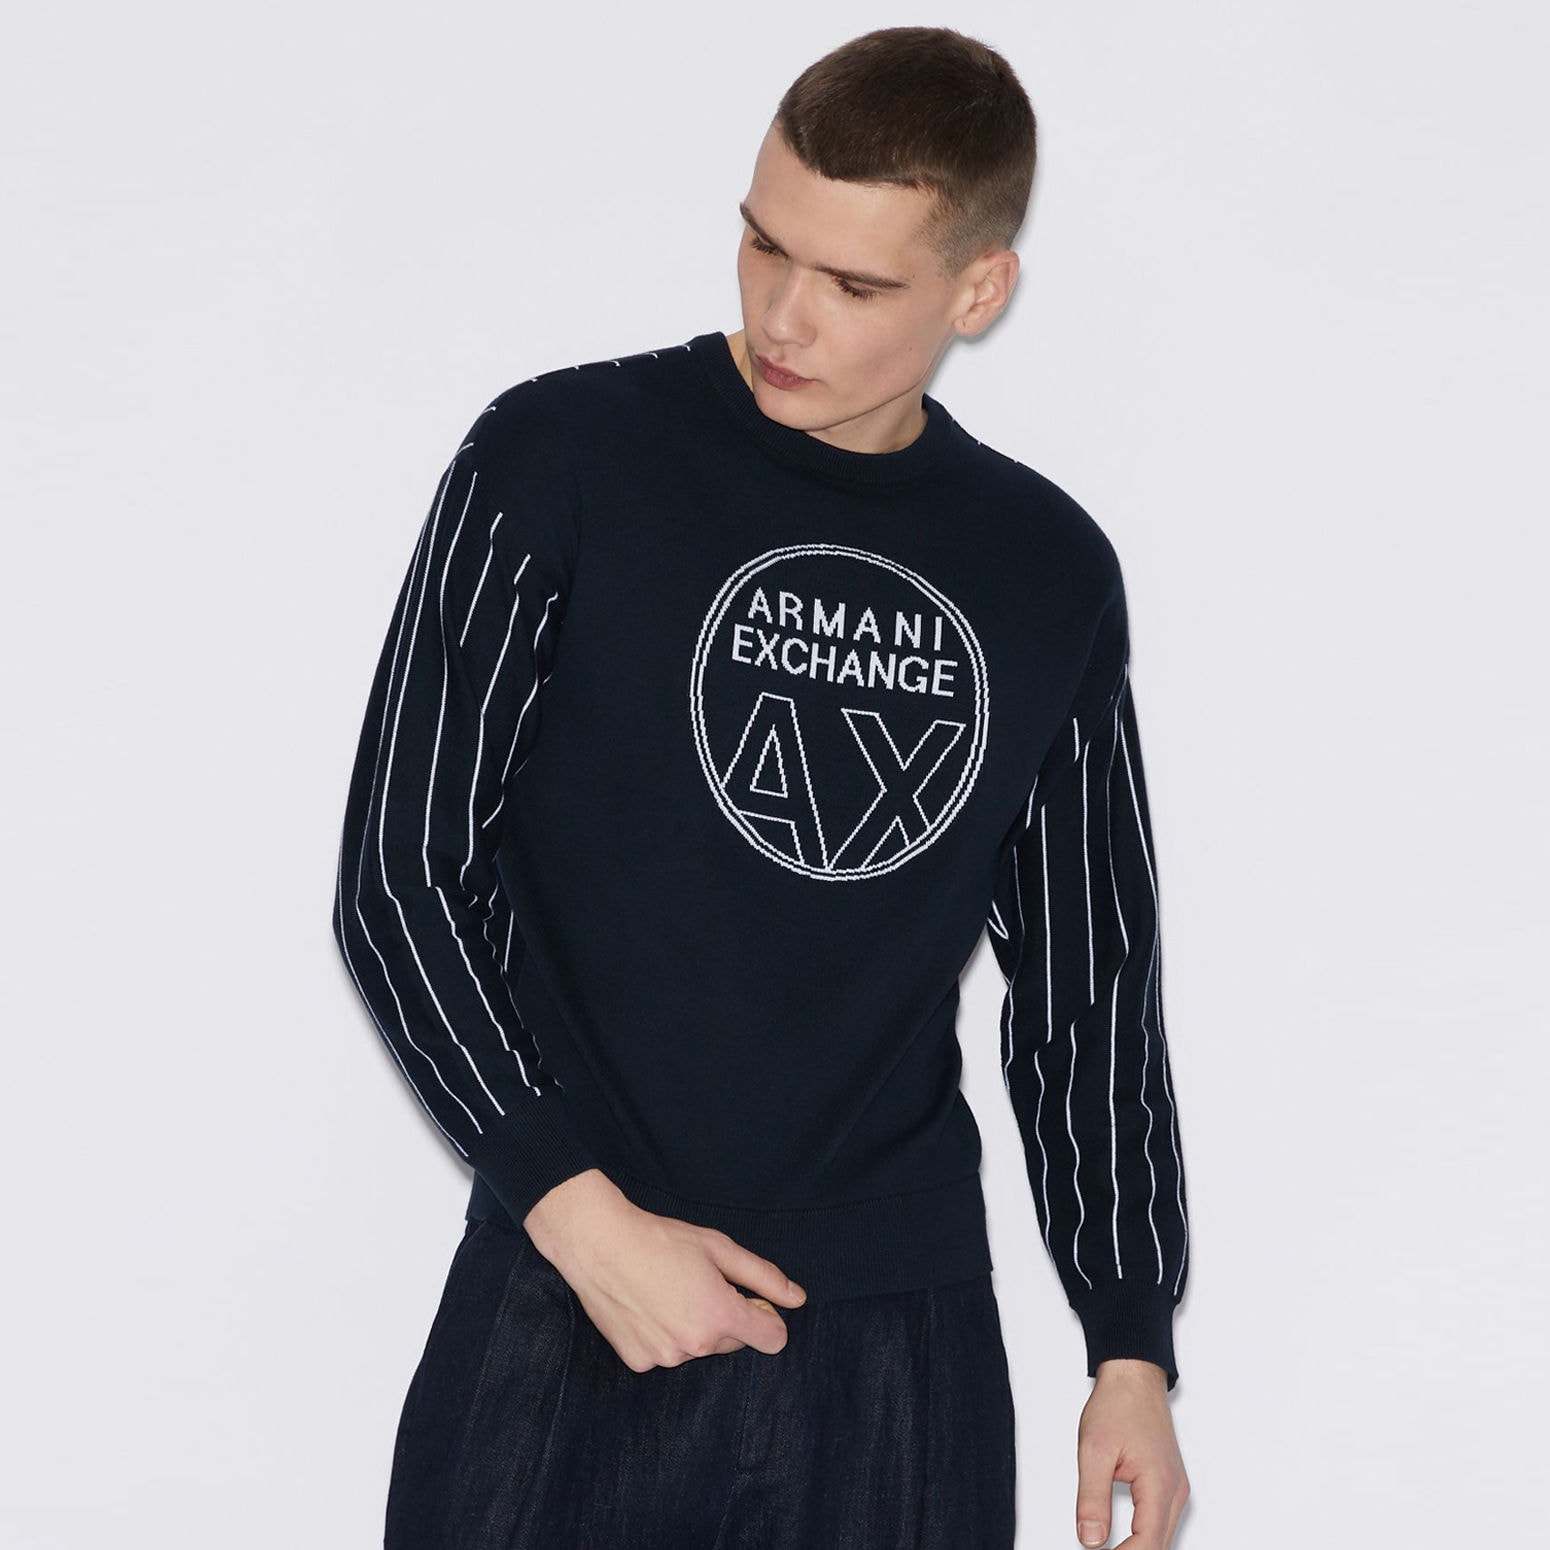 48b82370cbdc Armani Exchange Men s Clothing   Accessories